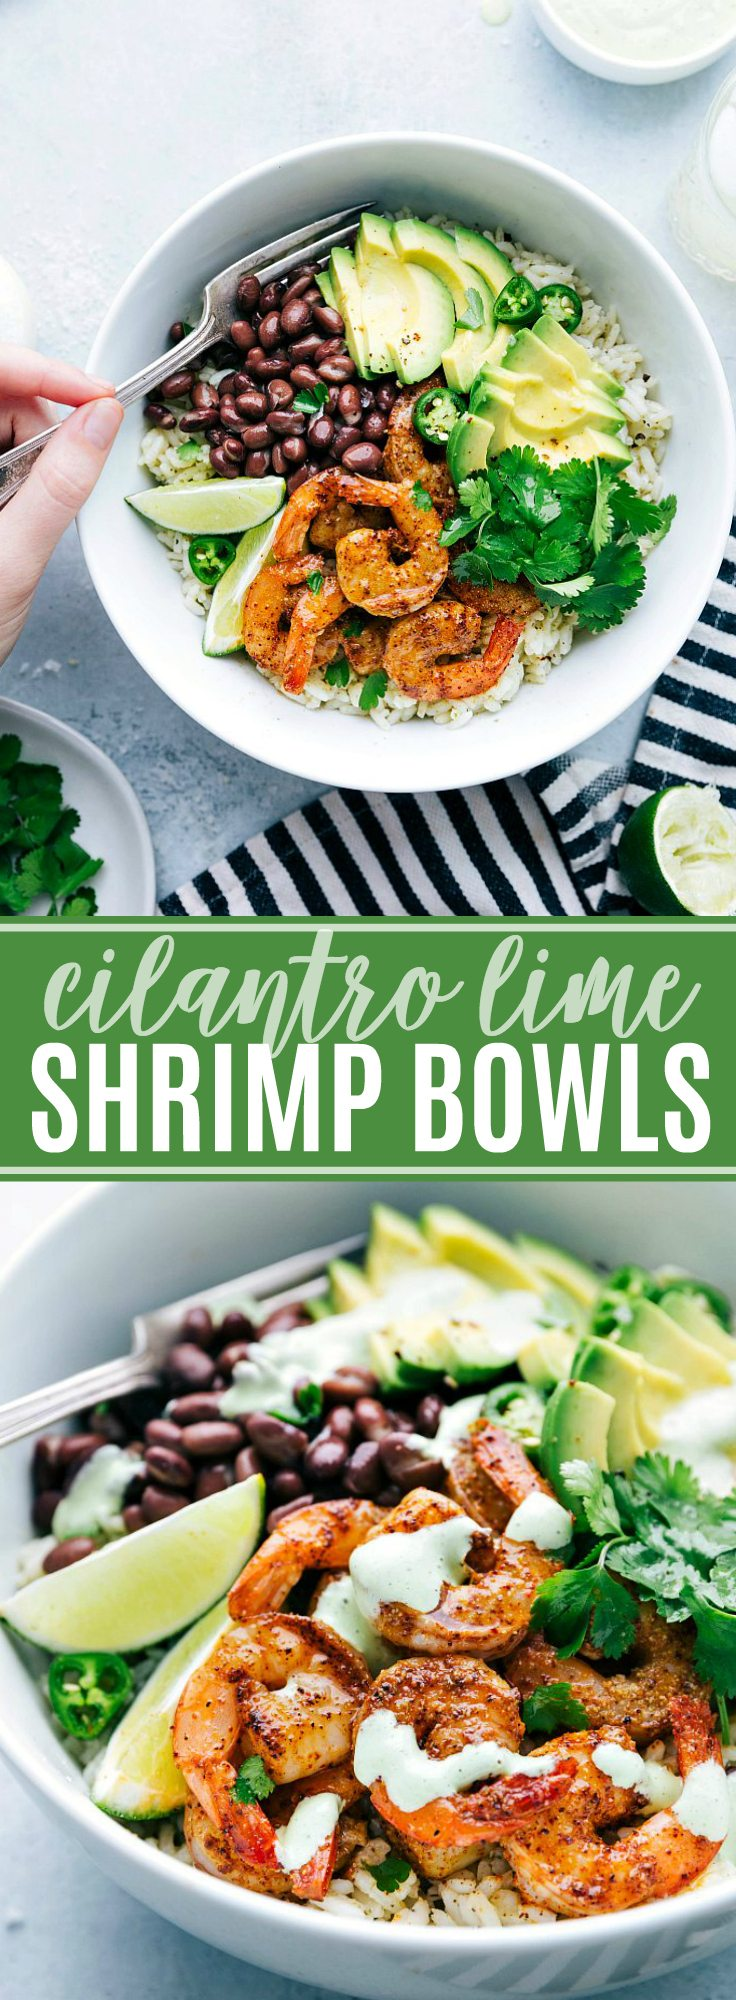 Delicious and simple cilantro lime shrimp bowls with the BEST sauce! via chelseasmessyapron.com #easy #30minute #meal #kidfriendly #cilantro #lime #shrimp #seafood #avocado #southwest #fast #quick #dinner #healthy #rice